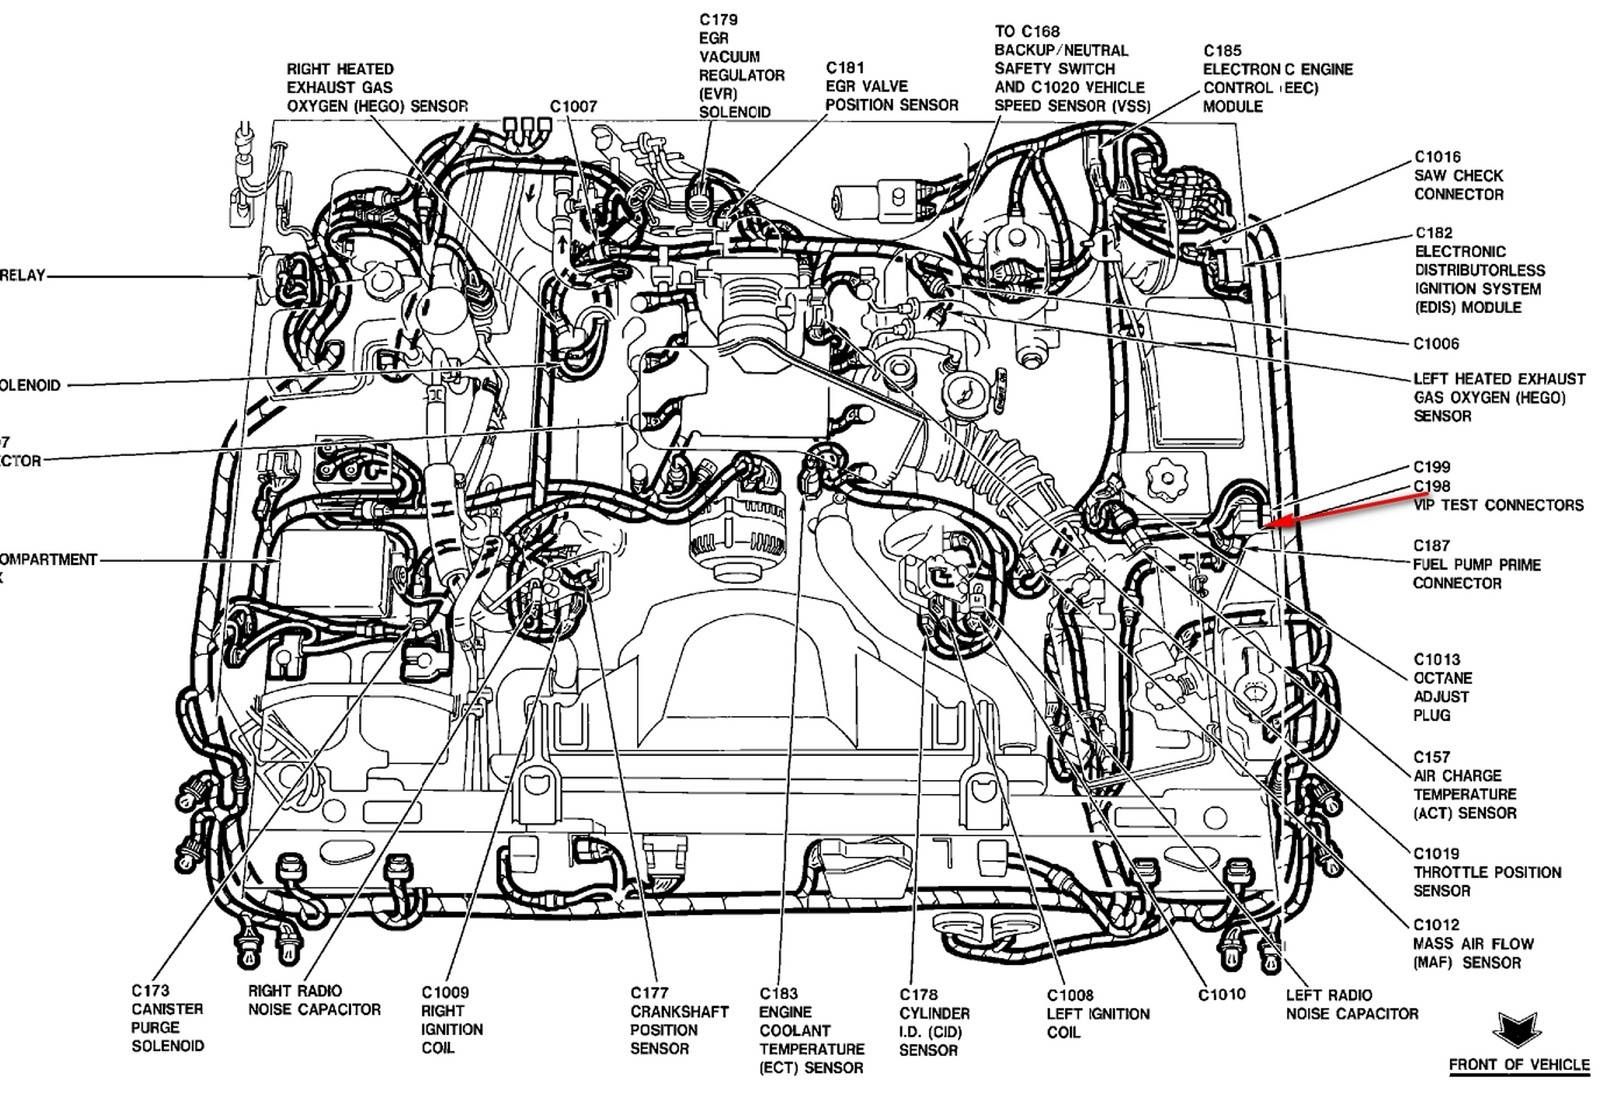 Harness Diagram 2007 Dodge Nitro besides P0502 gmc likewise Bmw R1150rt Fuse Box additionally Toyota Camry 2 5 1990 Specs And Images further Bmw Wiring Diagrams E46 Radio Diagram Besides Further E36 Latter Endearing Enchanting. on 2002 bmw 325i wiring harness